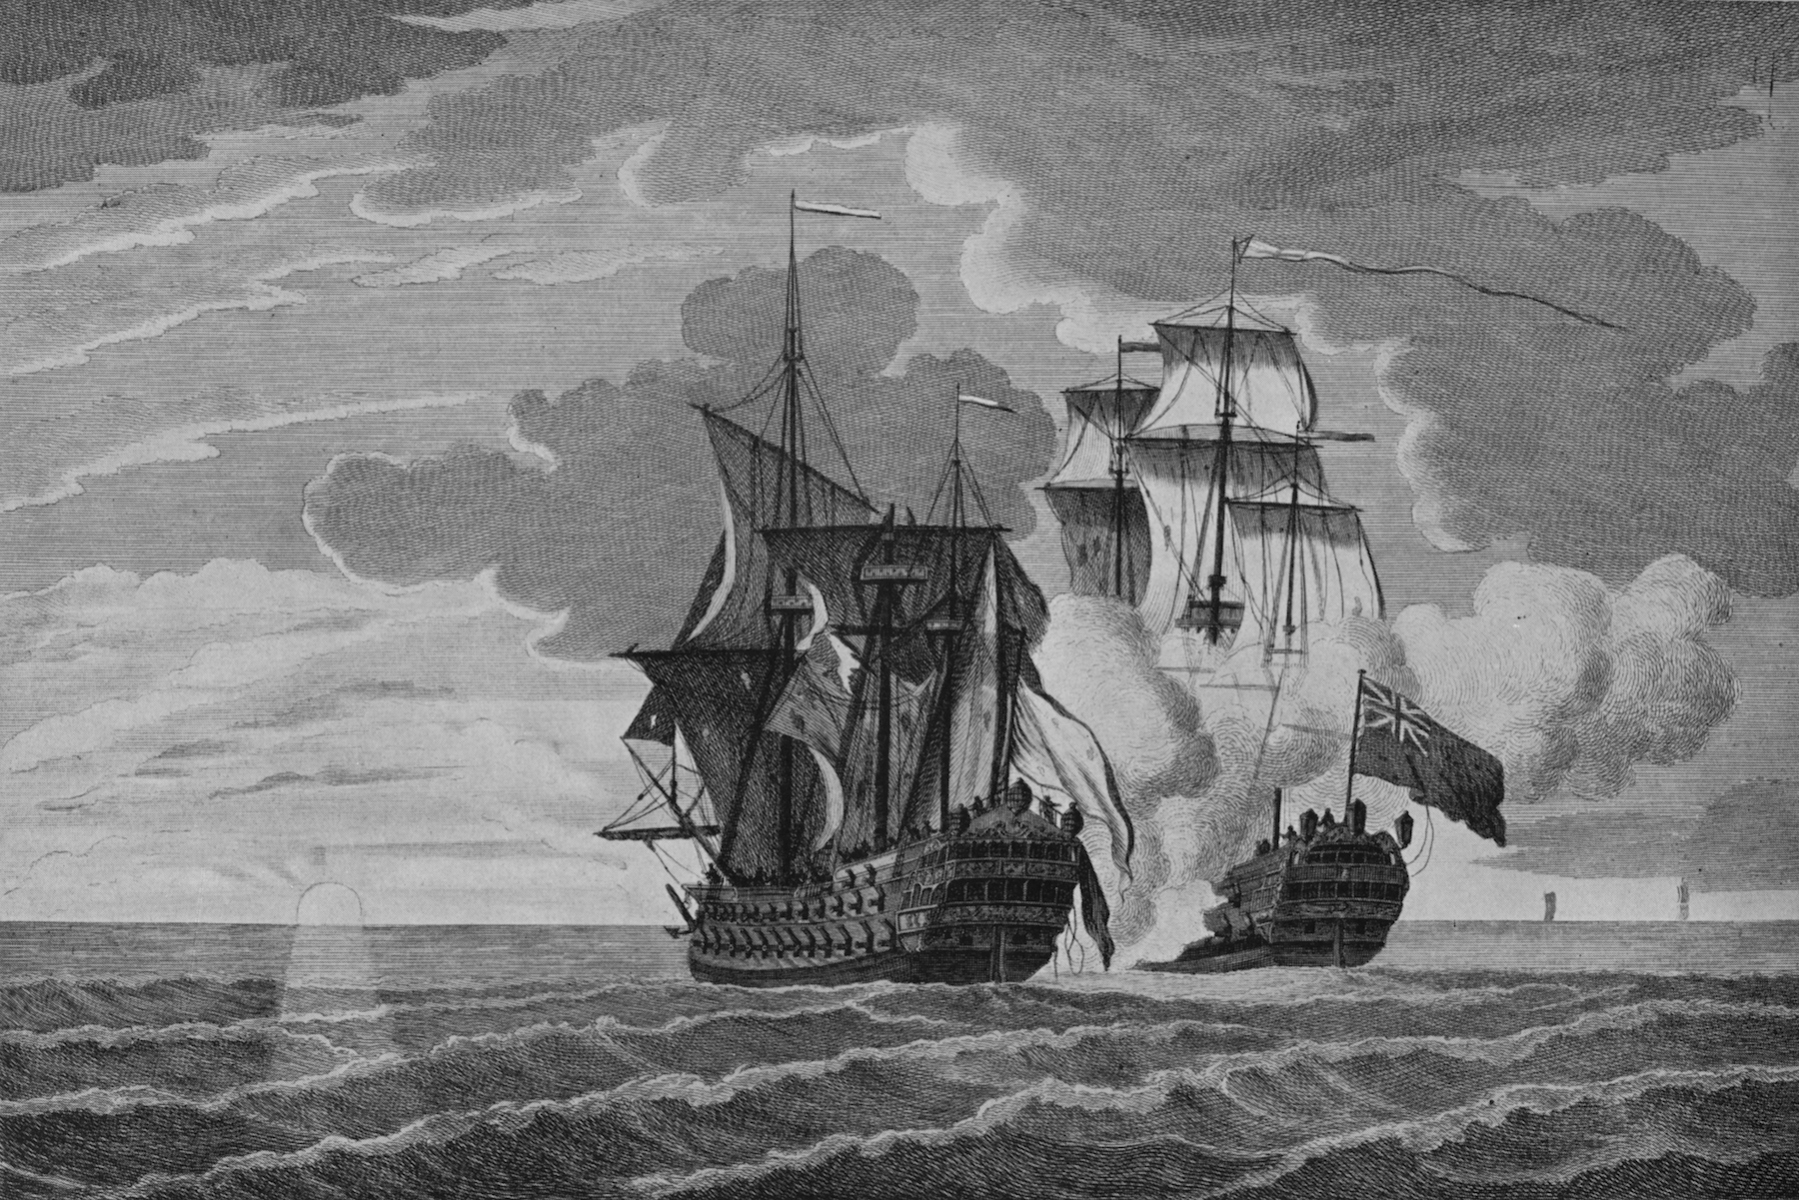 The 'Nottingham' and the 'Mars'' (c1750), from 'Old Naval Prints,' by Charles N Robinson & Geoffrey Holme (The Studio Limited, London), 1924. HMS 'Nottingham' captured the French warship 'Mars,' which was returning to French from the unsuccessful Duc d'Anville expedition to North America, on 11 October 1746. (Photo by Print Collector/Getty Images)